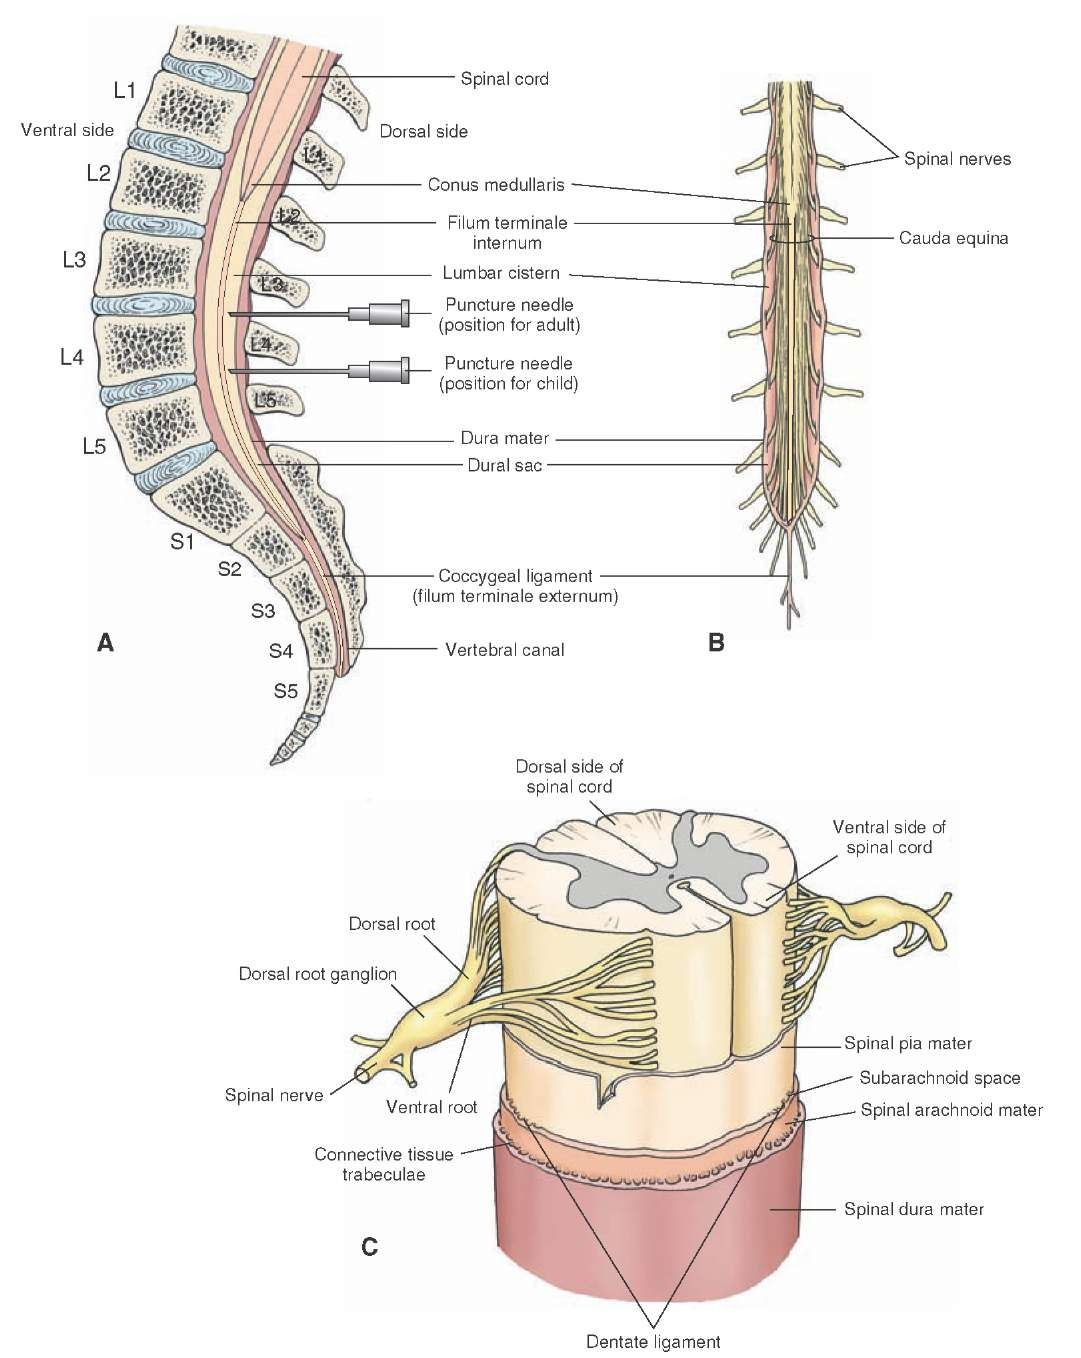 The Spinal Cord A The Lumbar Cistern Extends From The Caudal End Of The Spinal Cord Conus Medullaris Spinal Cord Anatomy Cerebrospinal Fluid Brain Anatomy The dorsal and ventral roots traverse the subarachnoid space and pierce the arachnoid and dura mater. spinal cord anatomy